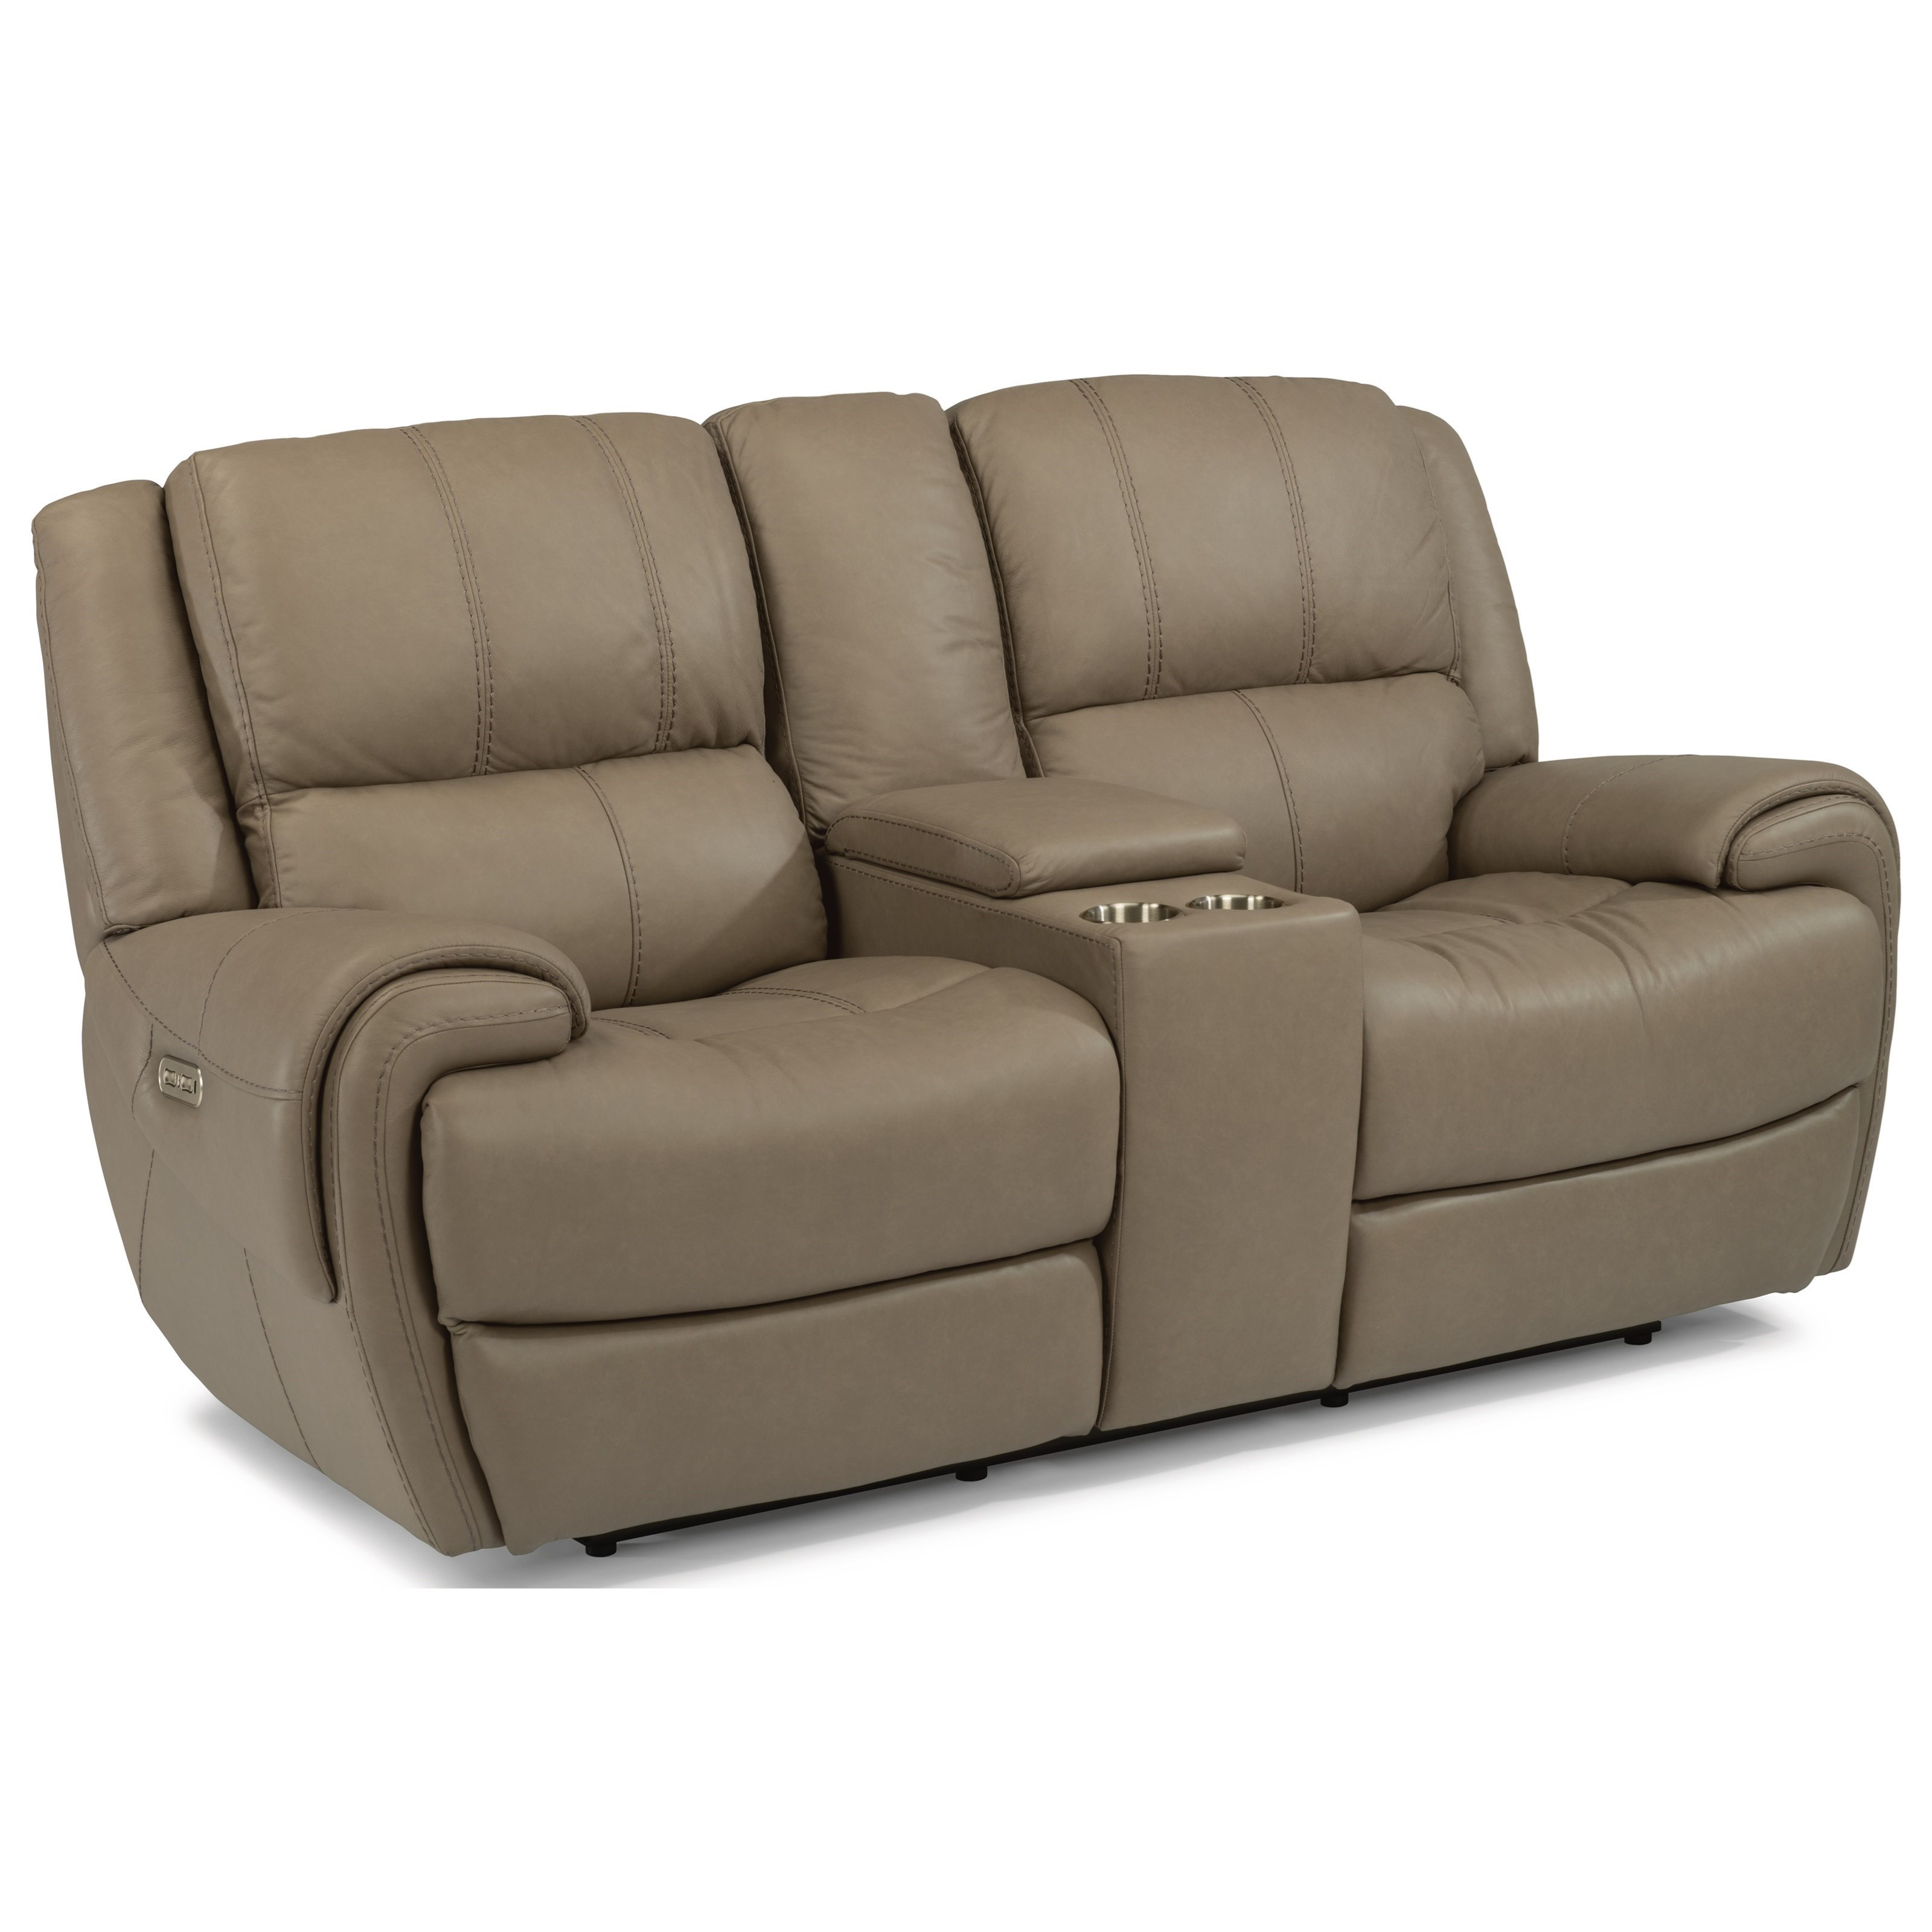 Flexsteel Latitudes-Nance Casual Power Reclining Loveseat with Console and Power Headrests - Conlinu0027s Furniture - Reclining Love Seats  sc 1 st  Conlinu0027s Furniture : power reclining loveseats - islam-shia.org